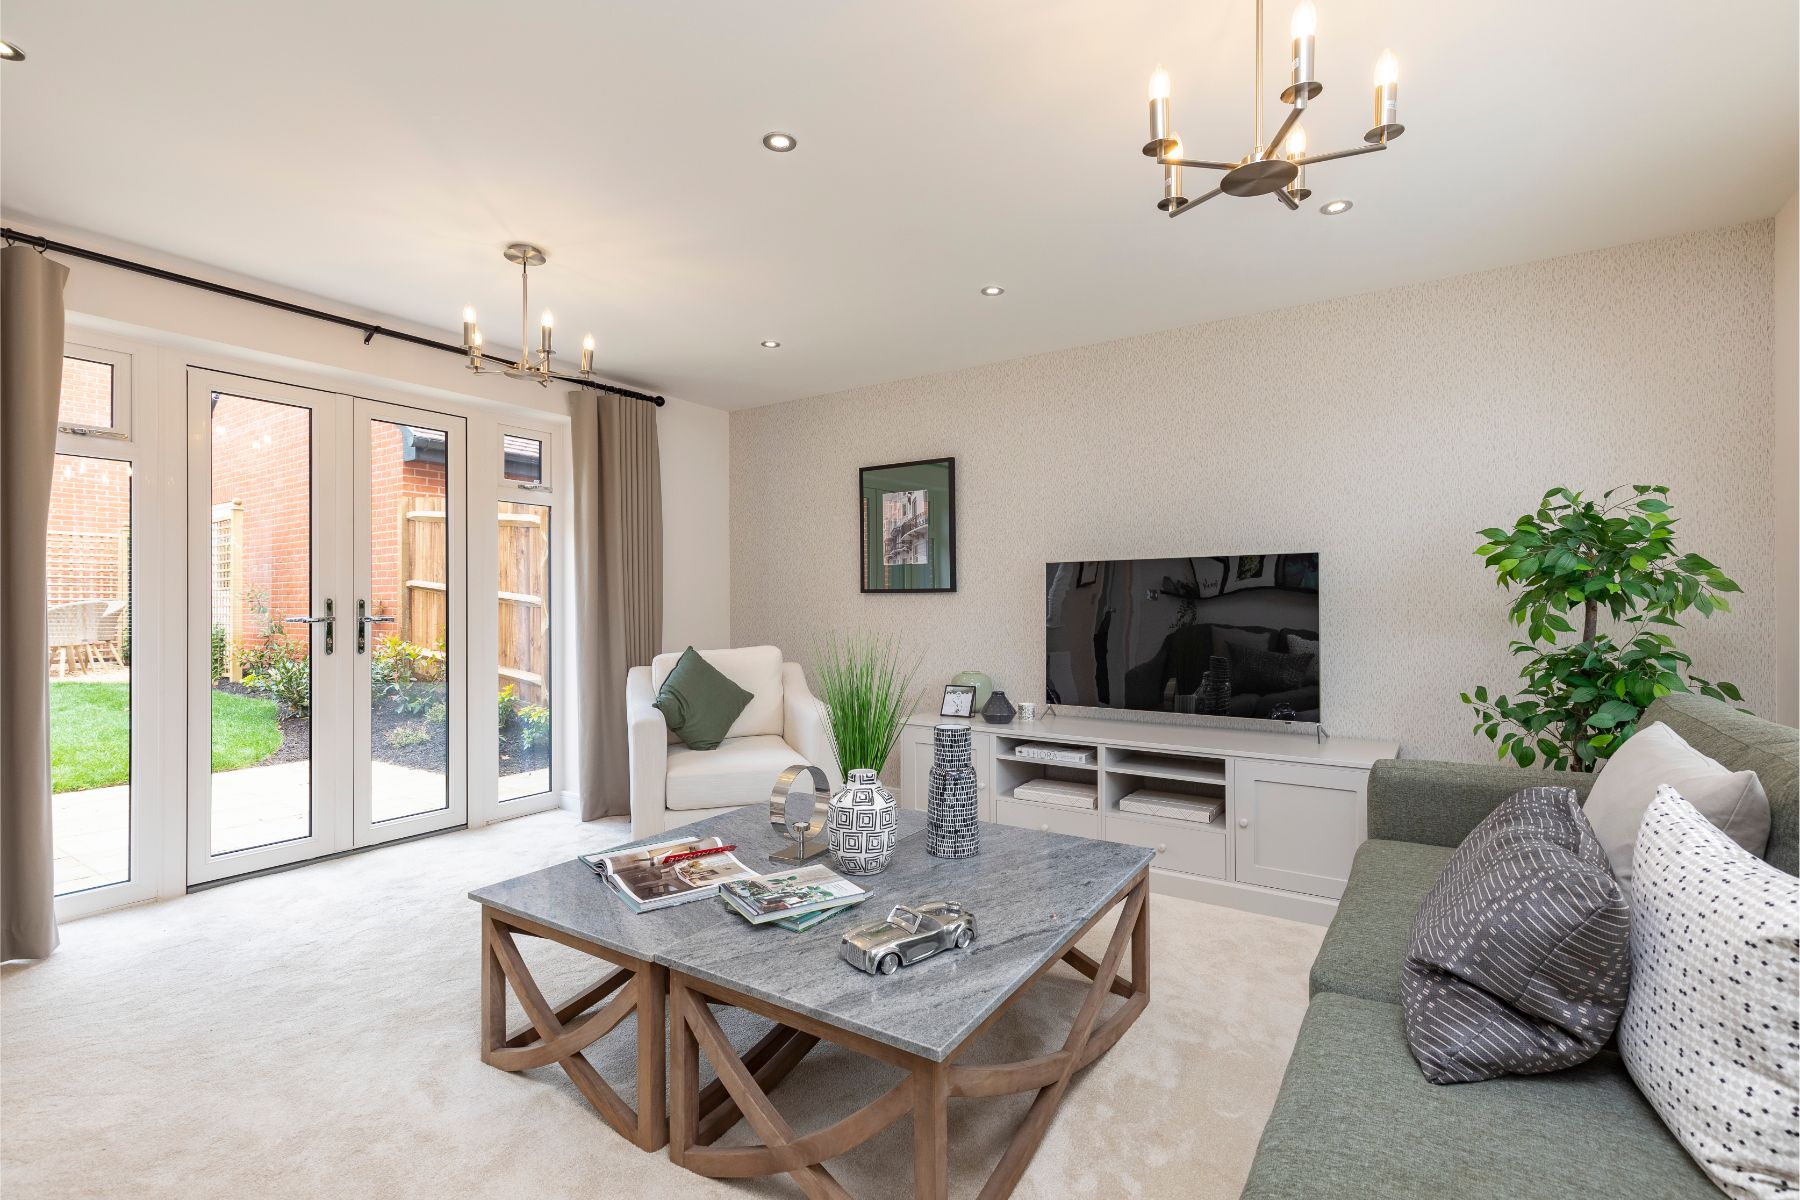 TW Exeter - Mayfield Gardens - Waysdale example living room